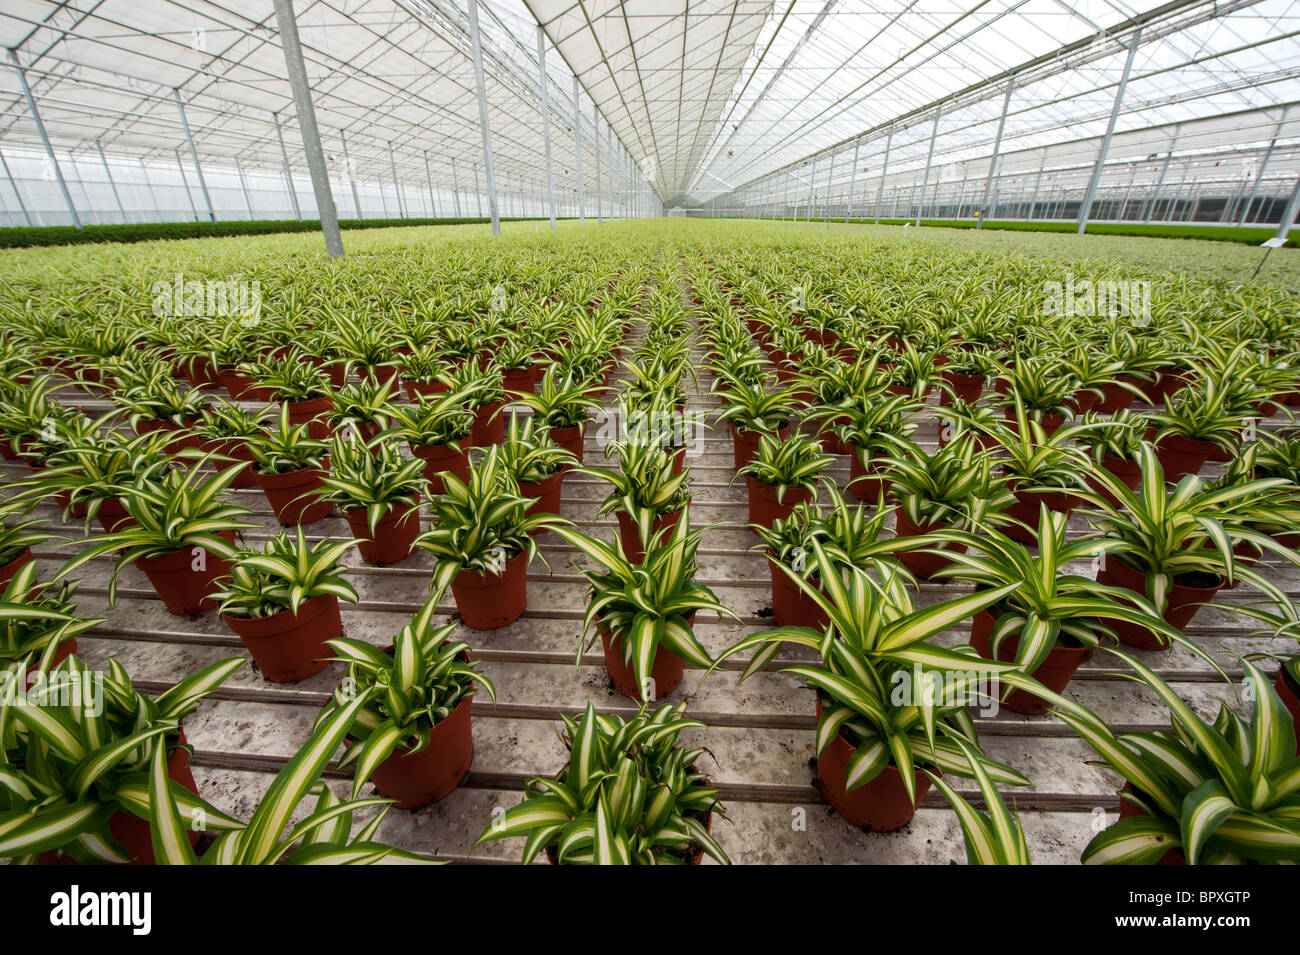 Diversity of plants in greenhouse - Stock Image